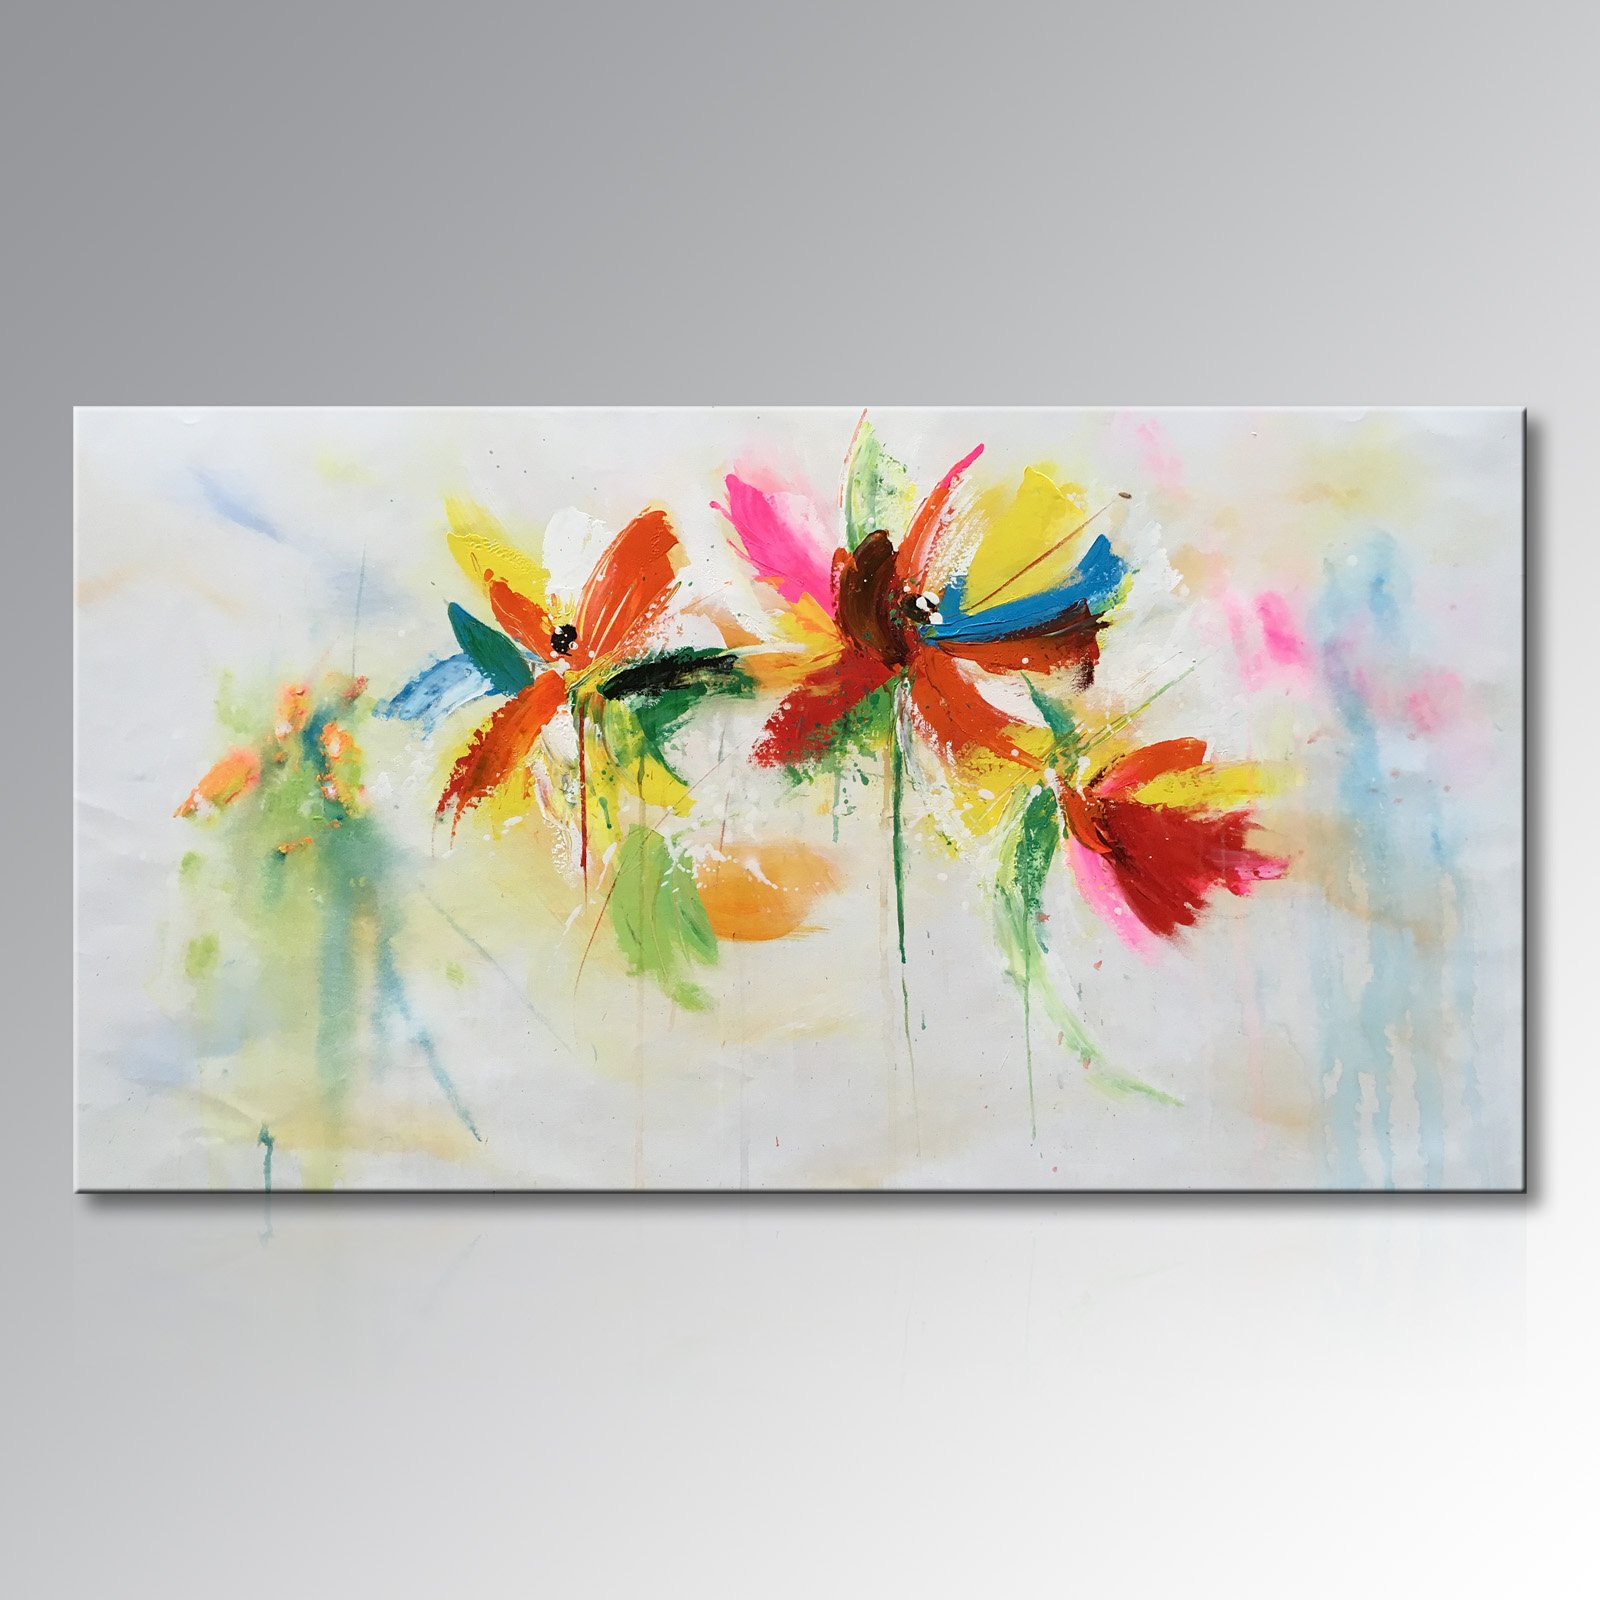 Seekland Art Hand Painted Abstract Floral Canvas Wall Art Modern Flower Oil Painting Colorful Picture Decor Hanging Contemporary Artwork for Living Room Framed Ready to Hang ( 56''W x 28''H)